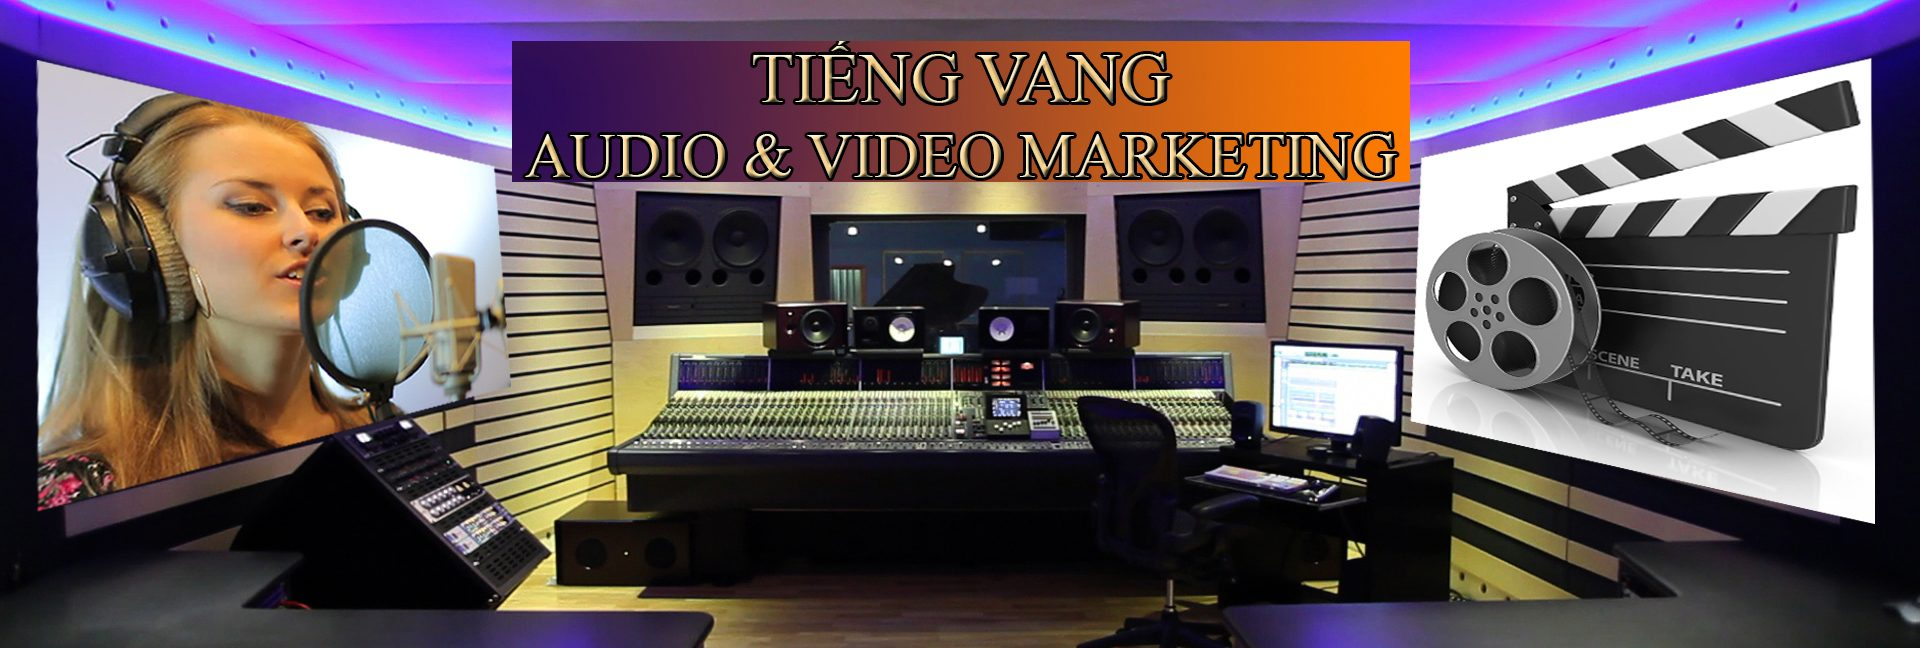 Audio Marketing, Video Marketing Professional